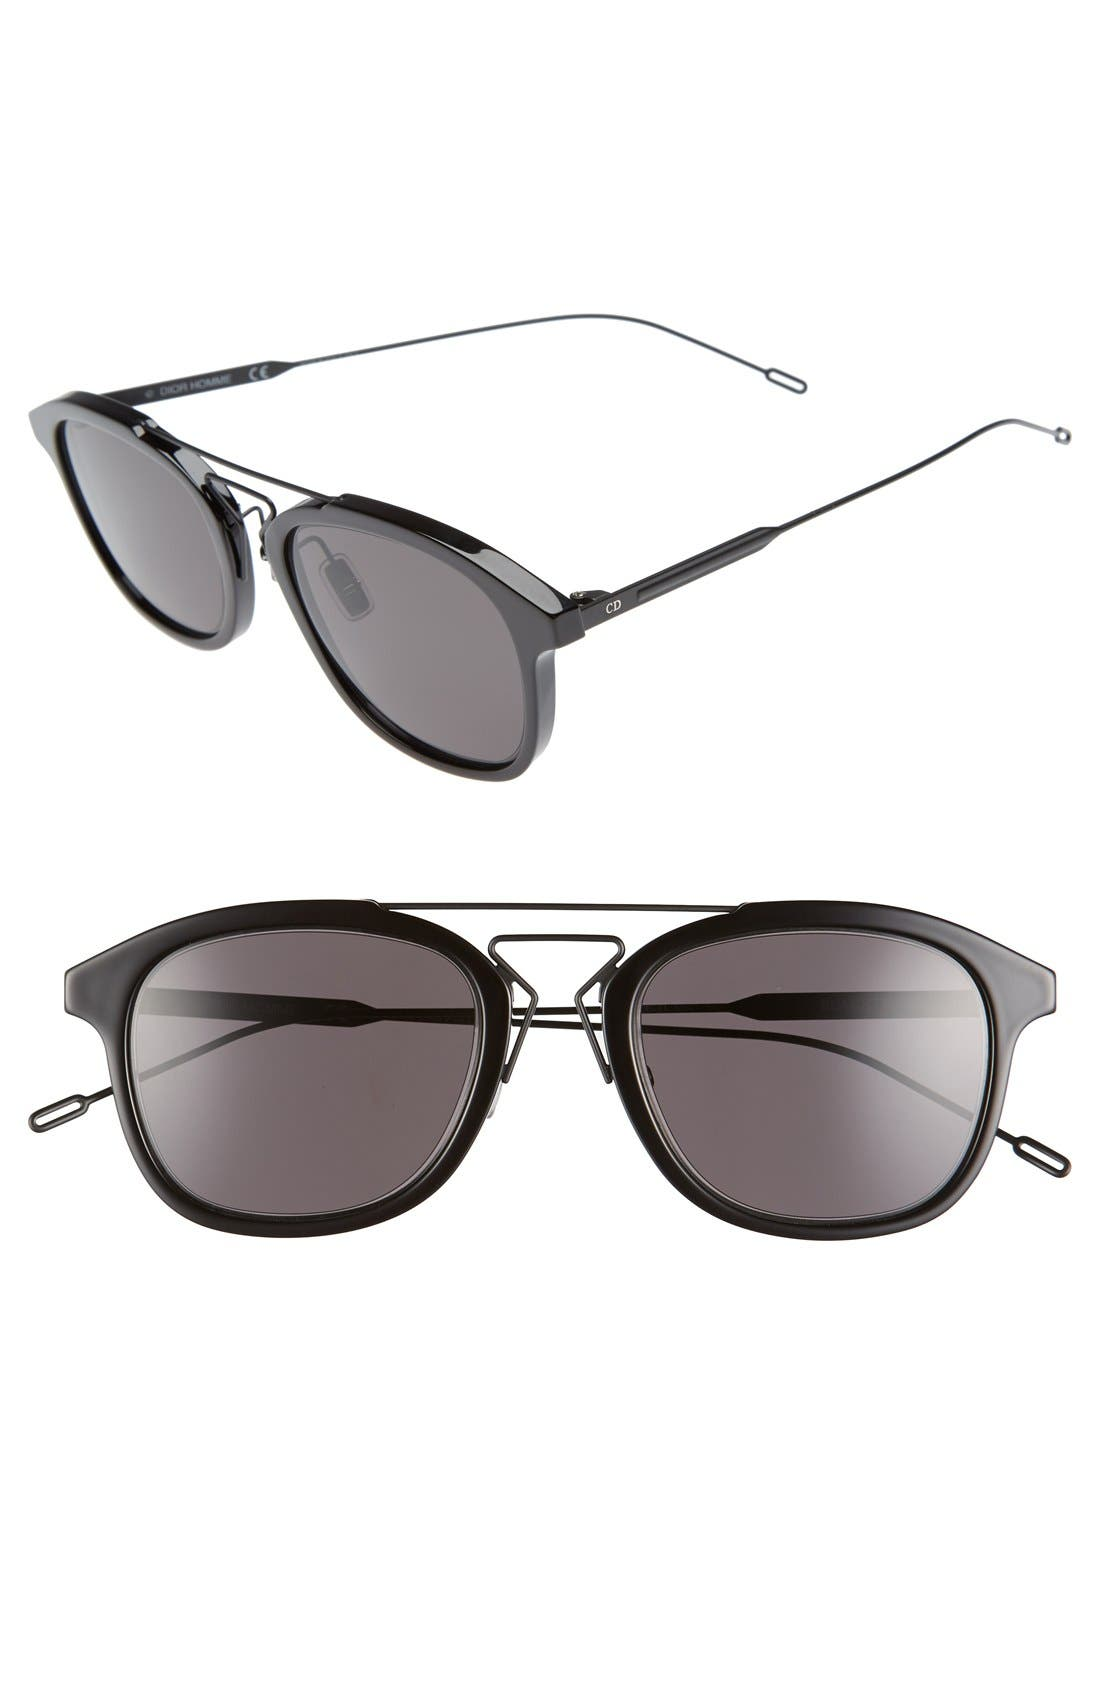 52mm 'Black Tie' Sunglasses,                             Main thumbnail 2, color,